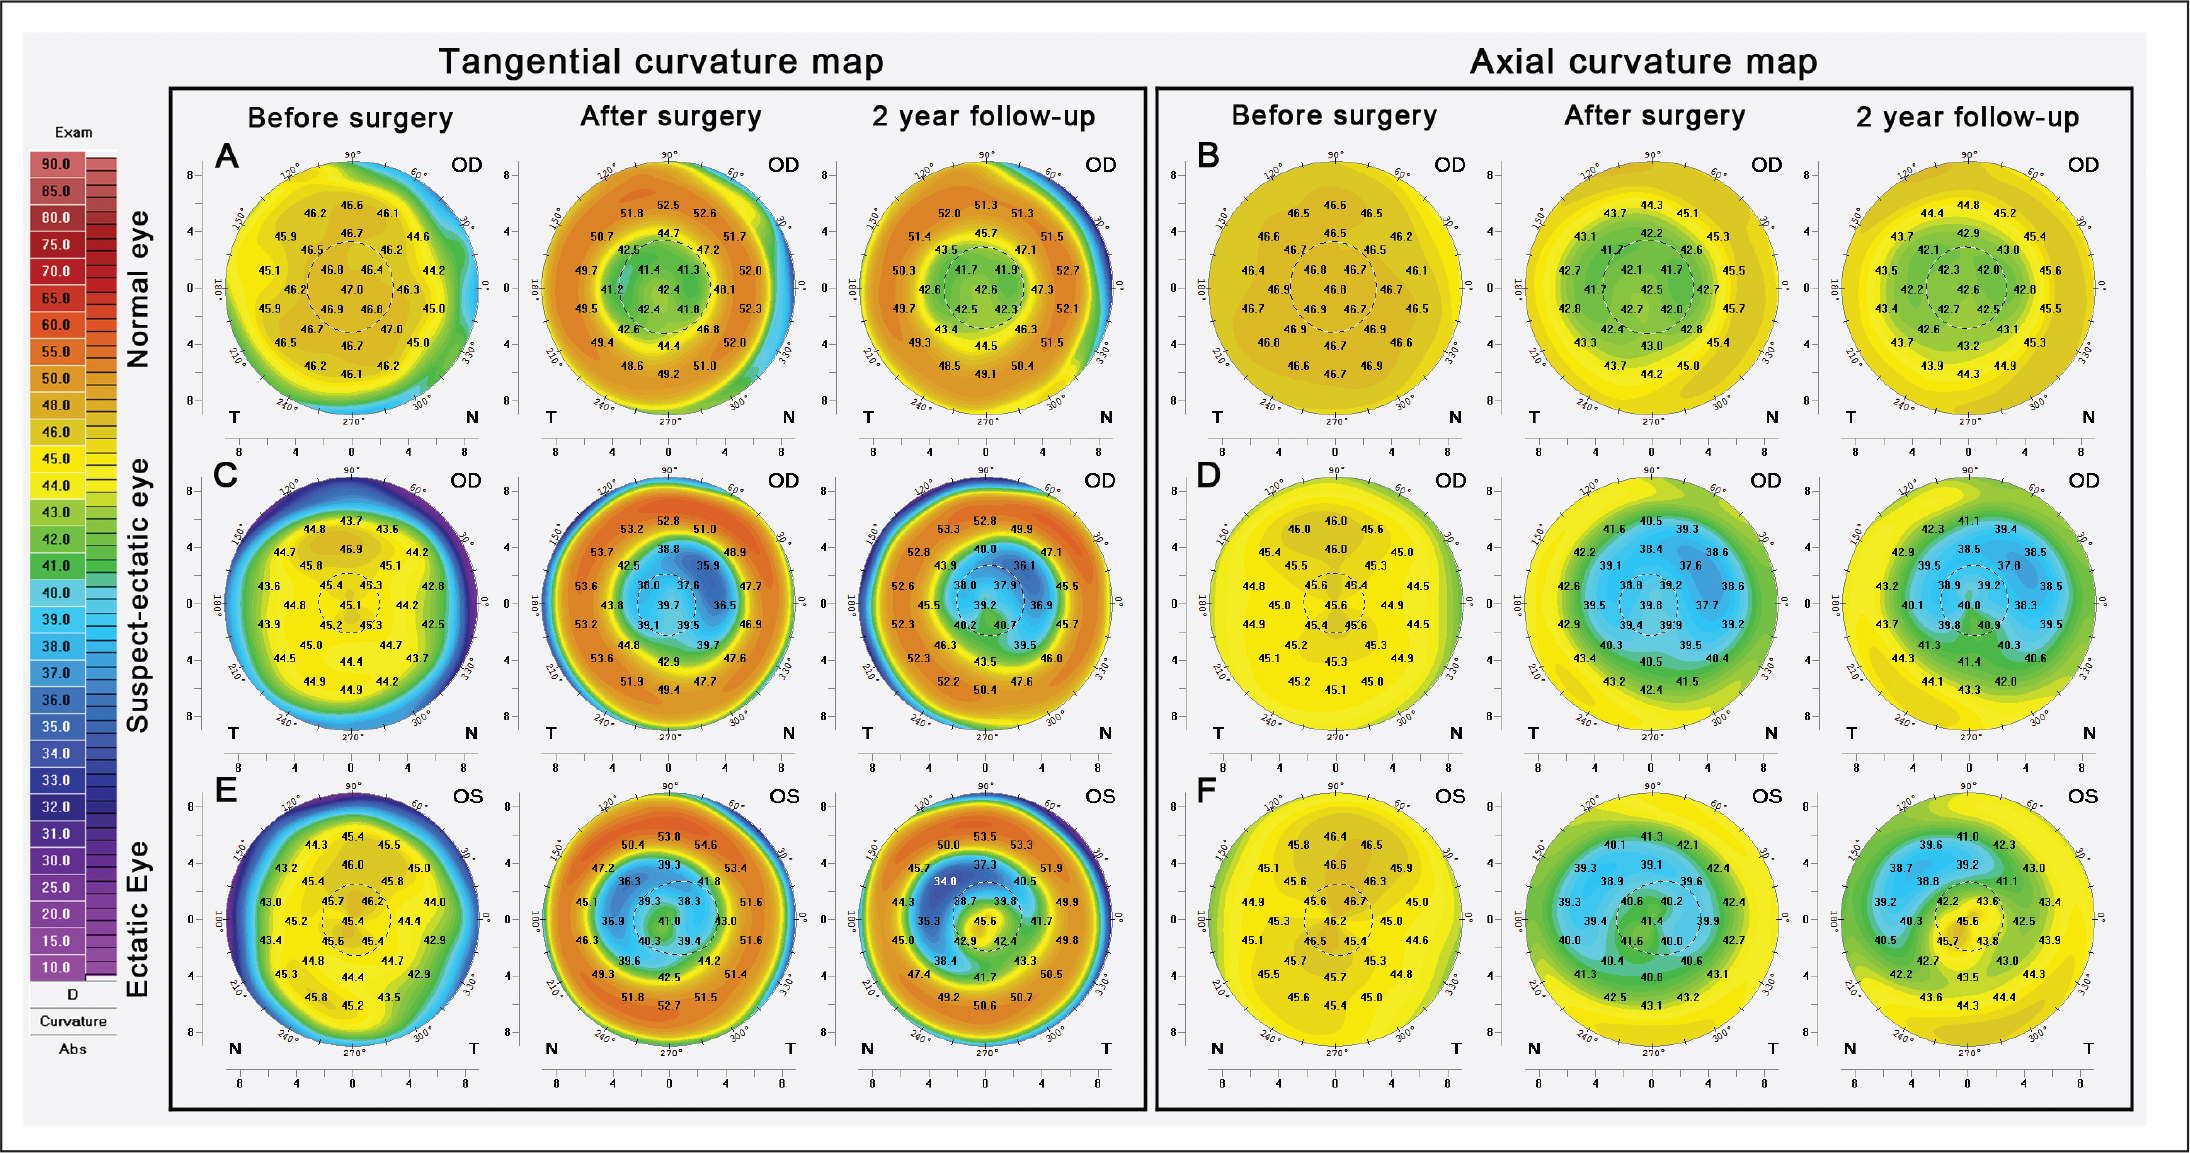 Tangential (A, C, and E) and axial (B, D, and F) anterior curvature maps from Pentacam HR (OCULUS Optikgeräte, Wetzlar, Germany) (absolute American style color bar in diopters) for before surgery, after surgery, and 2-year follow-up time points, respectively. (A and B) Normal eye curvature maps are shown in the first row, (C and D) suspect-ectatic eye curvature maps are shown in the second row, and (E and F) ectatic eye curvature maps are shown in the third row.